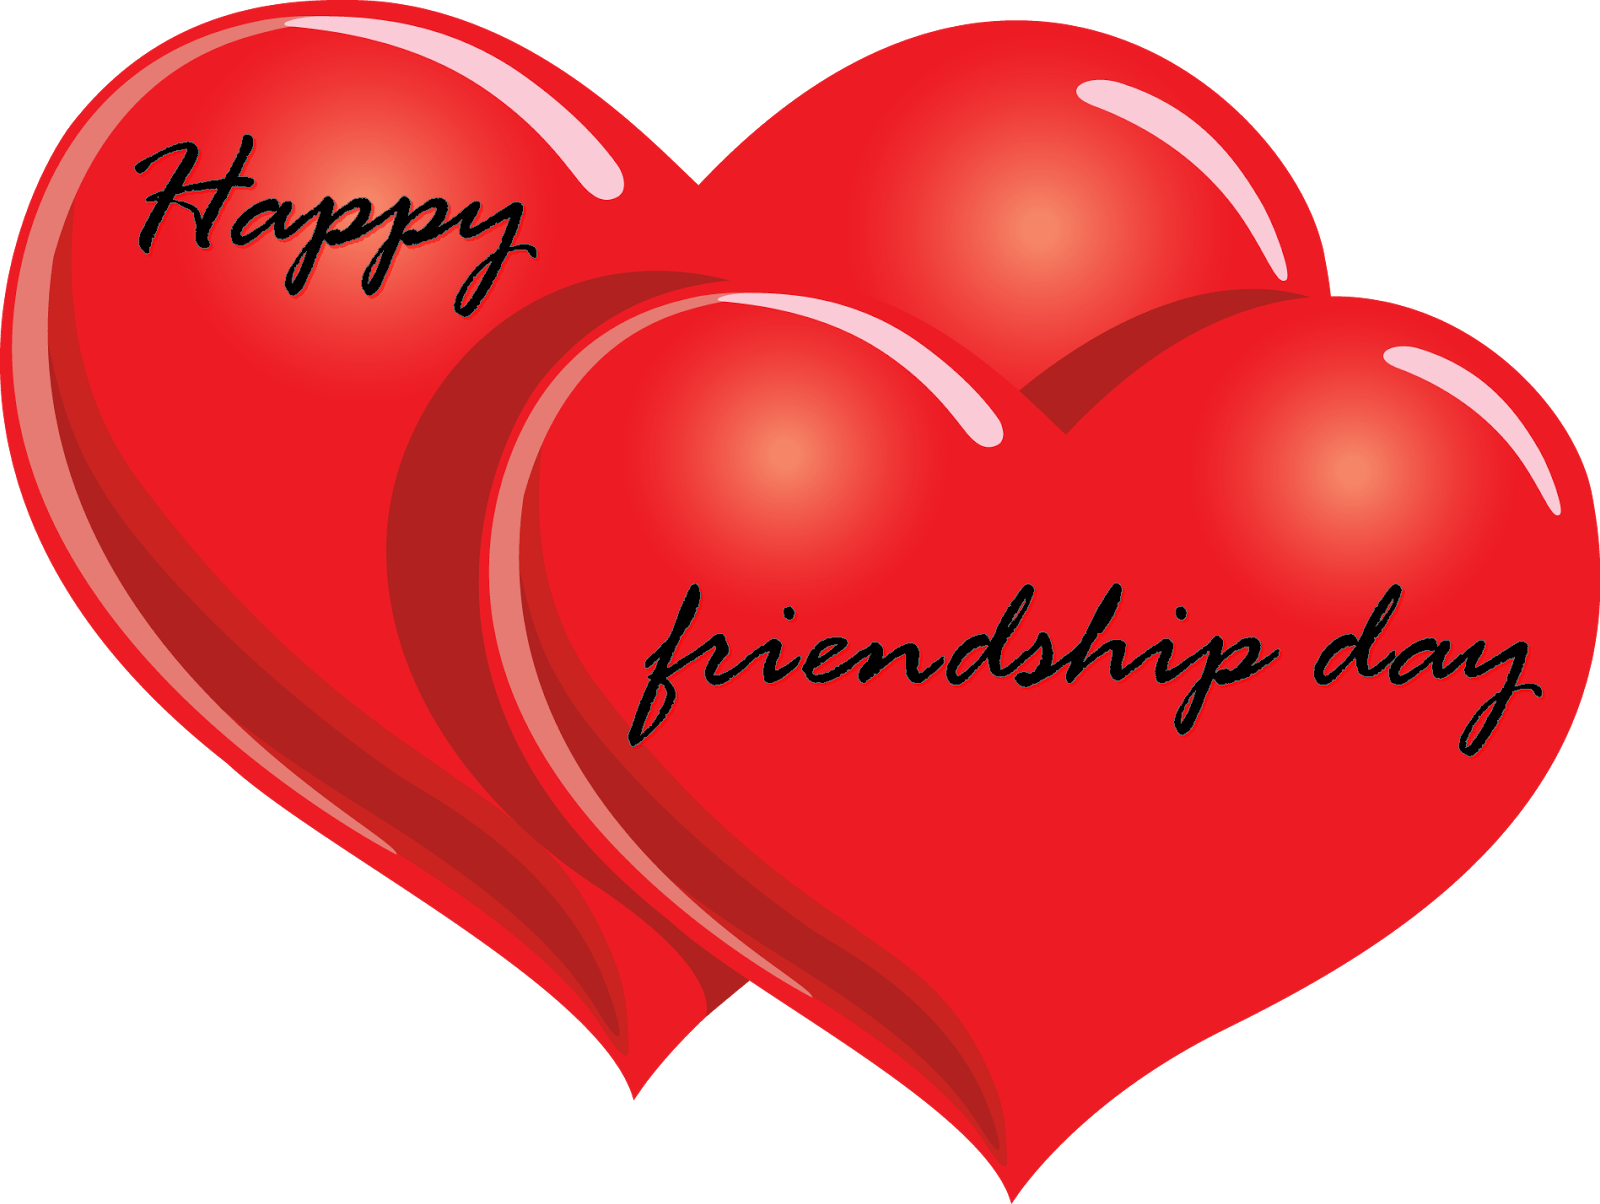 Best friend heart png. Friendship day photography friends